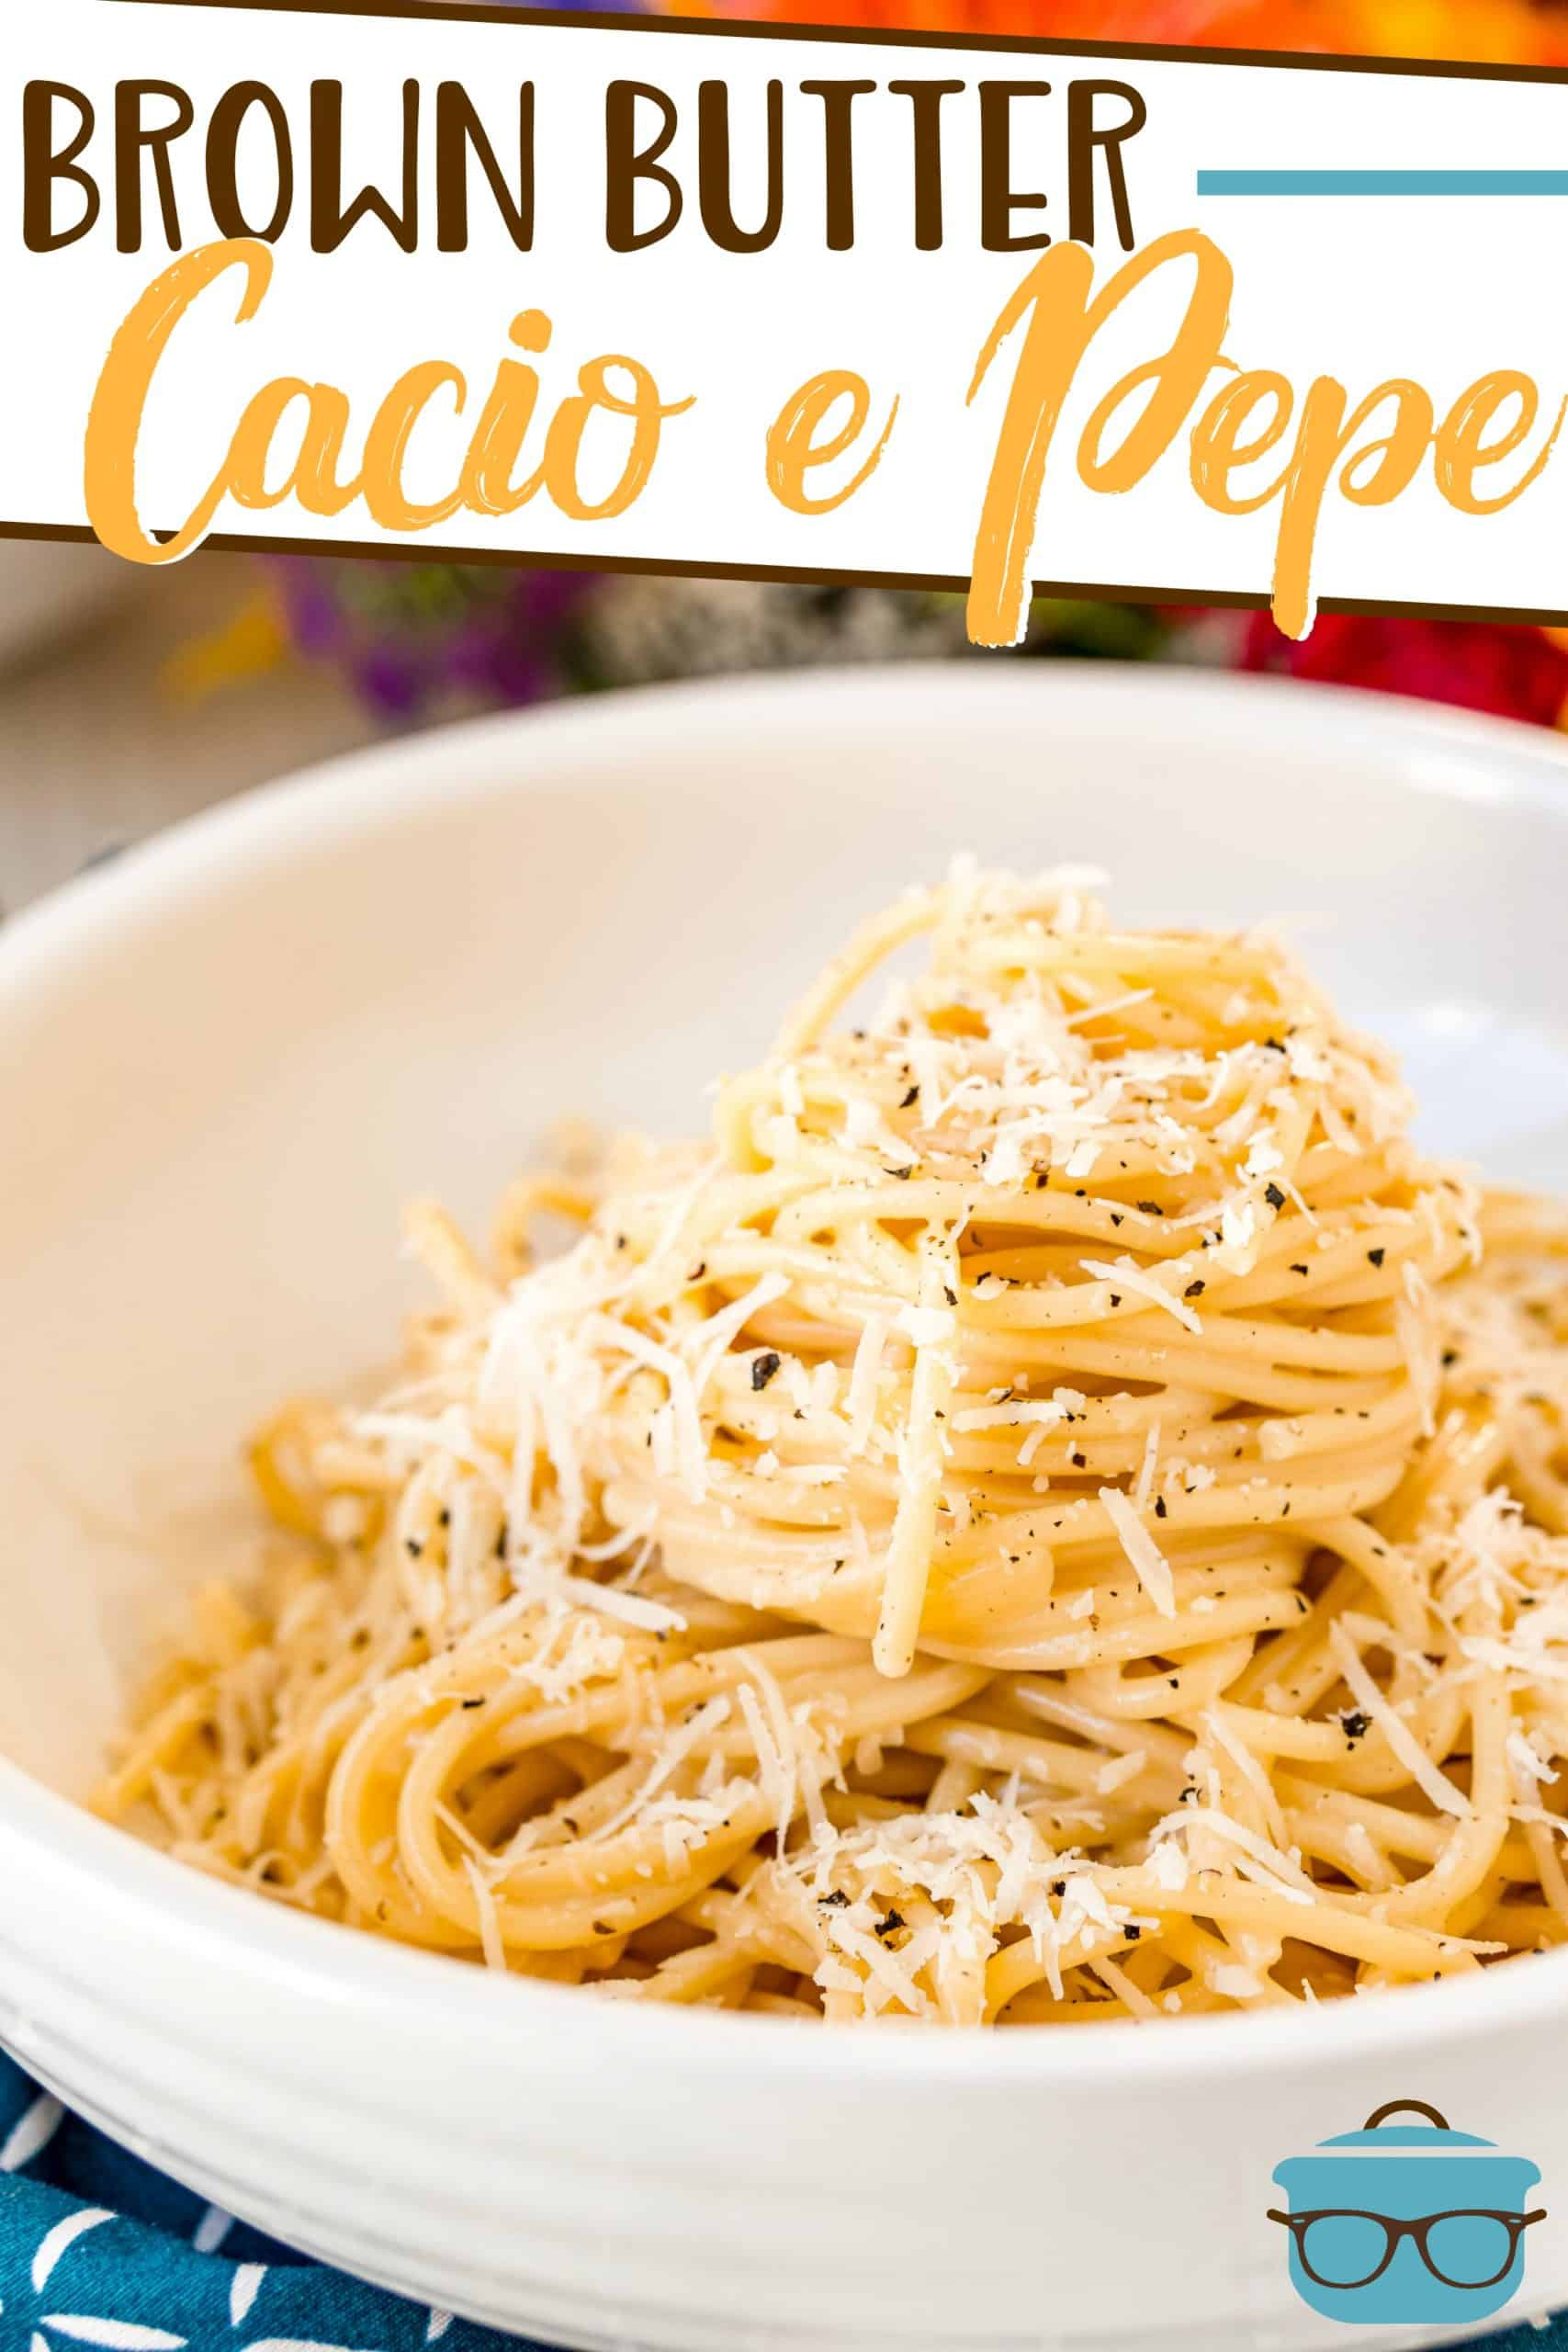 Brown Butter Cacio e Pepe is simply spaghetti coated in a butter and Parmesan sauce and loaded with fresh black pepper!